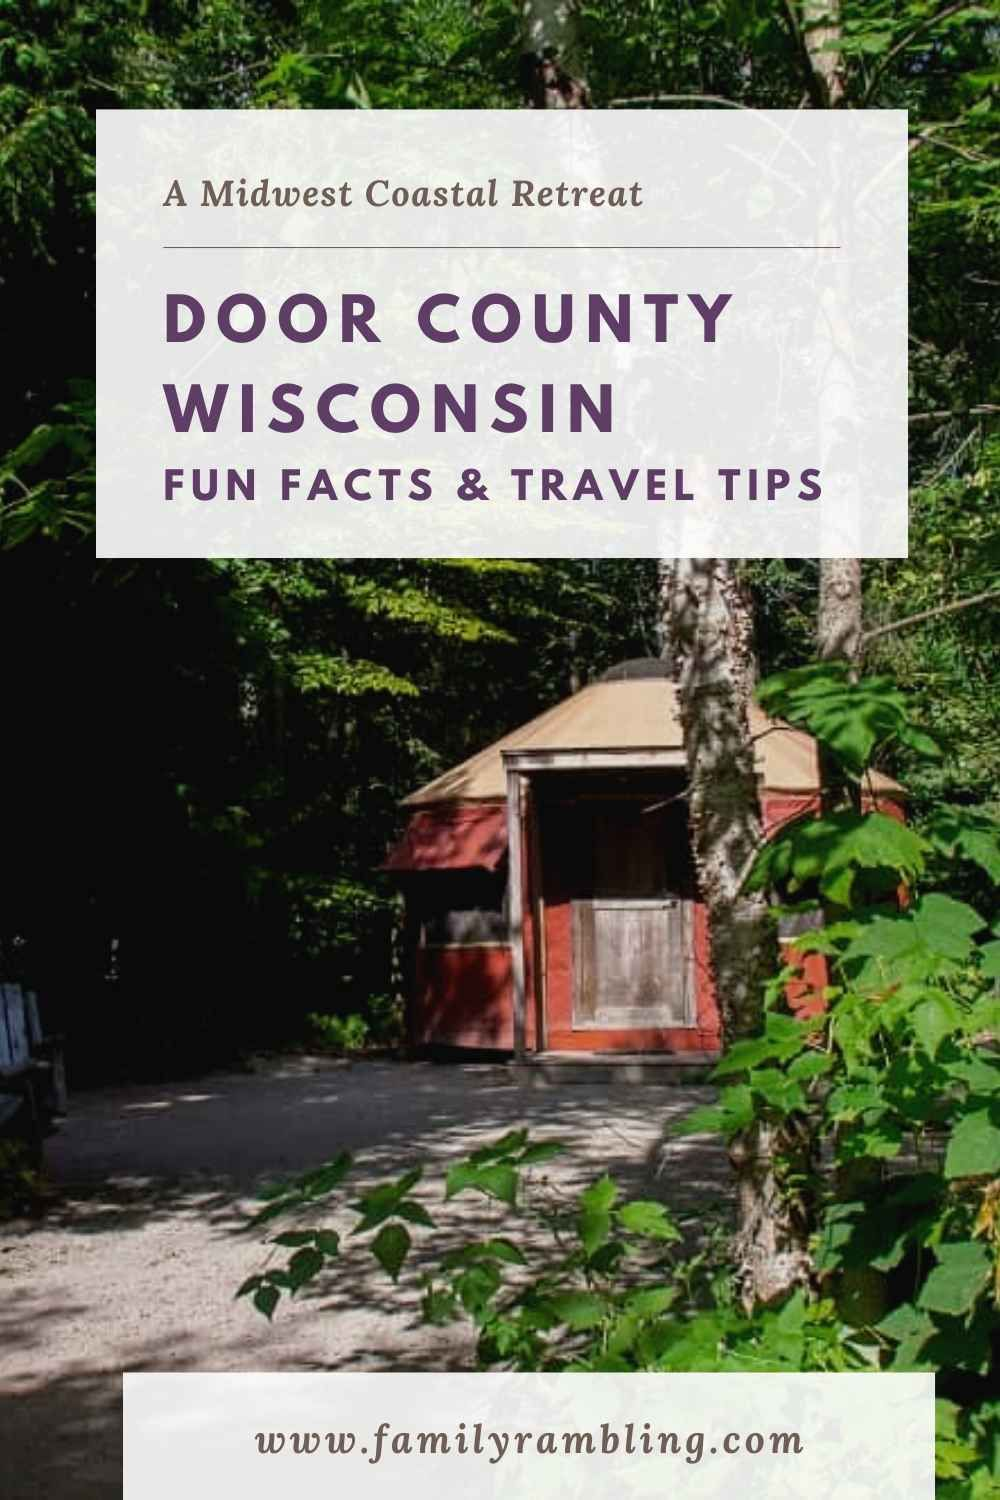 Door County Wisconsin Fun Facts In 2020 Road Trip Fun Family Travel Destinations Midwest Travel